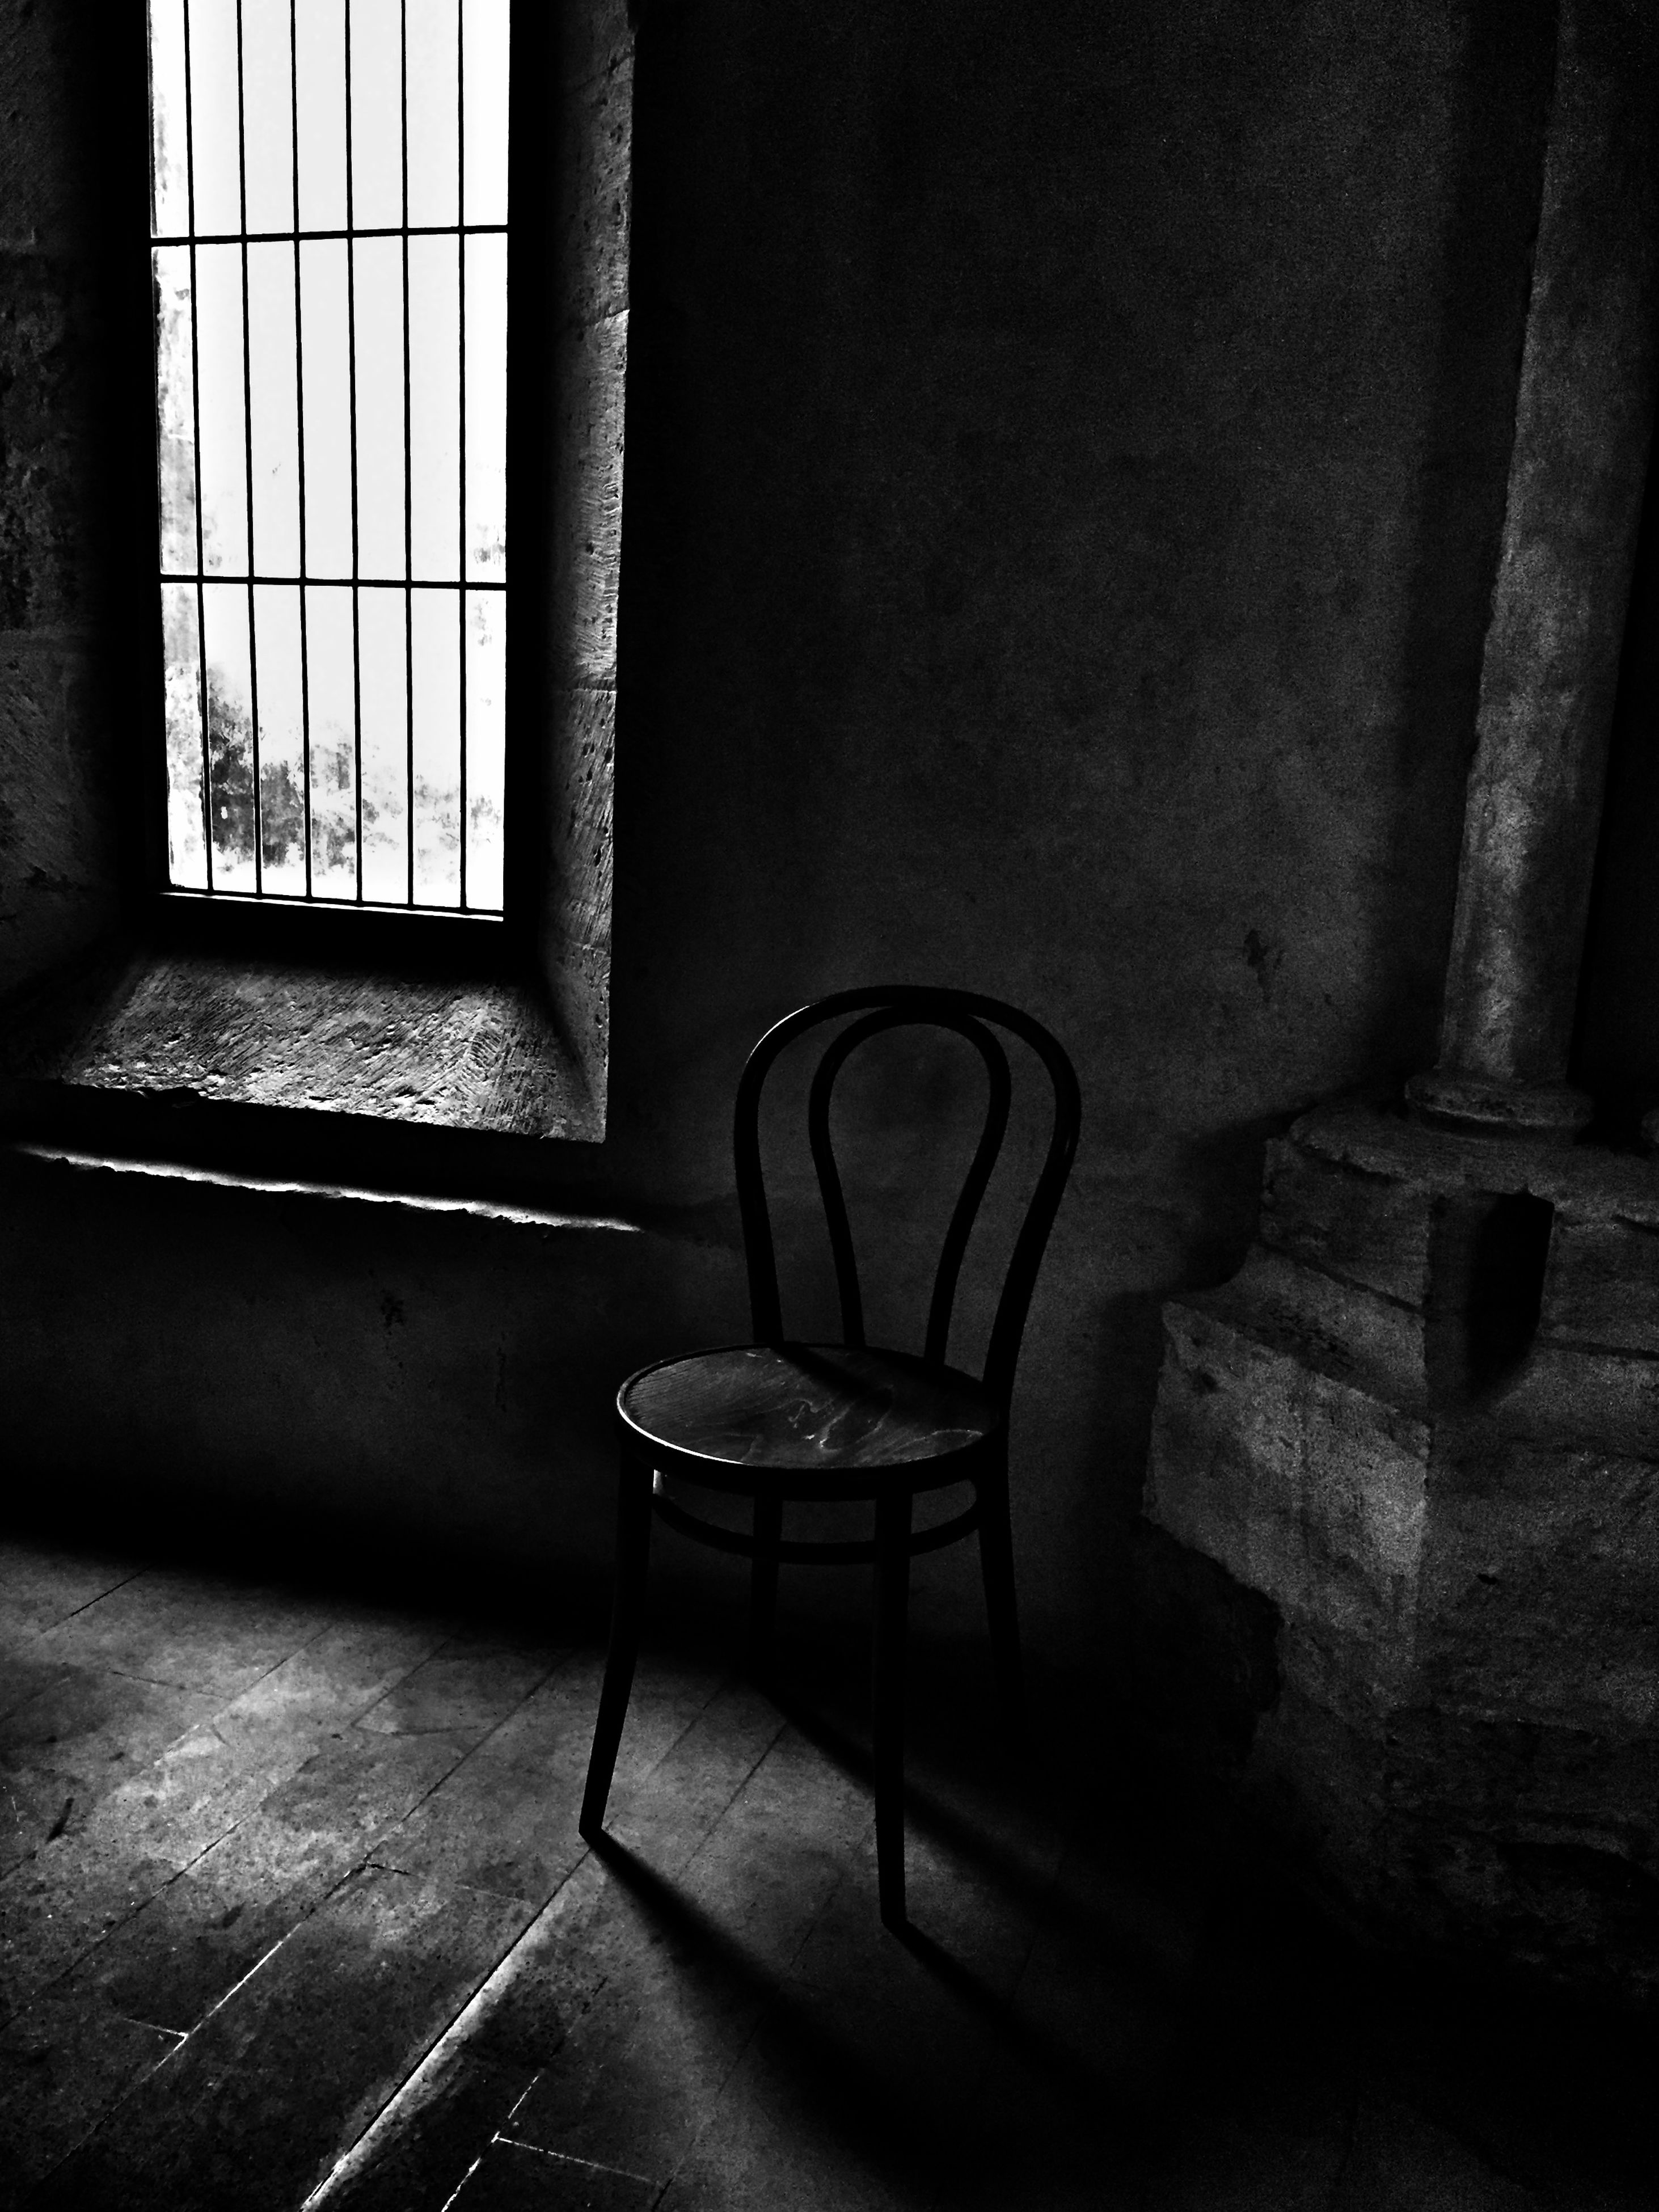 indoors, architecture, chair, built structure, empty, absence, window, flooring, sunlight, shadow, tiled floor, wall - building feature, home interior, interior, furniture, corridor, wall, seat, day, old